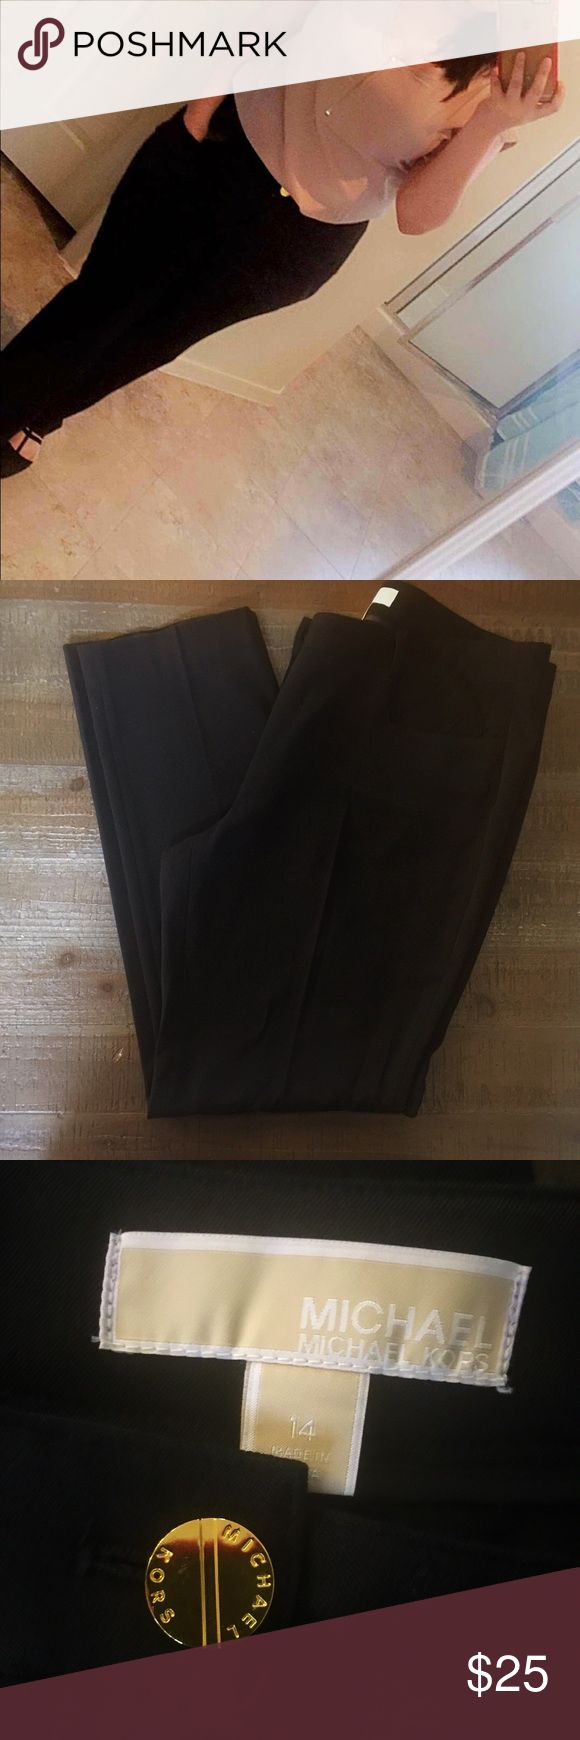 MICHAEL KORS DRESS PANTS Only worn once ! stretch knit for comfortable fit, mid rise and slim straight leg. Back welt pockets with logo plaque hardware above. Slash hand pockets. Belt loop waistband. Zipper fly and button closure. Michael Kors Pants Trousers